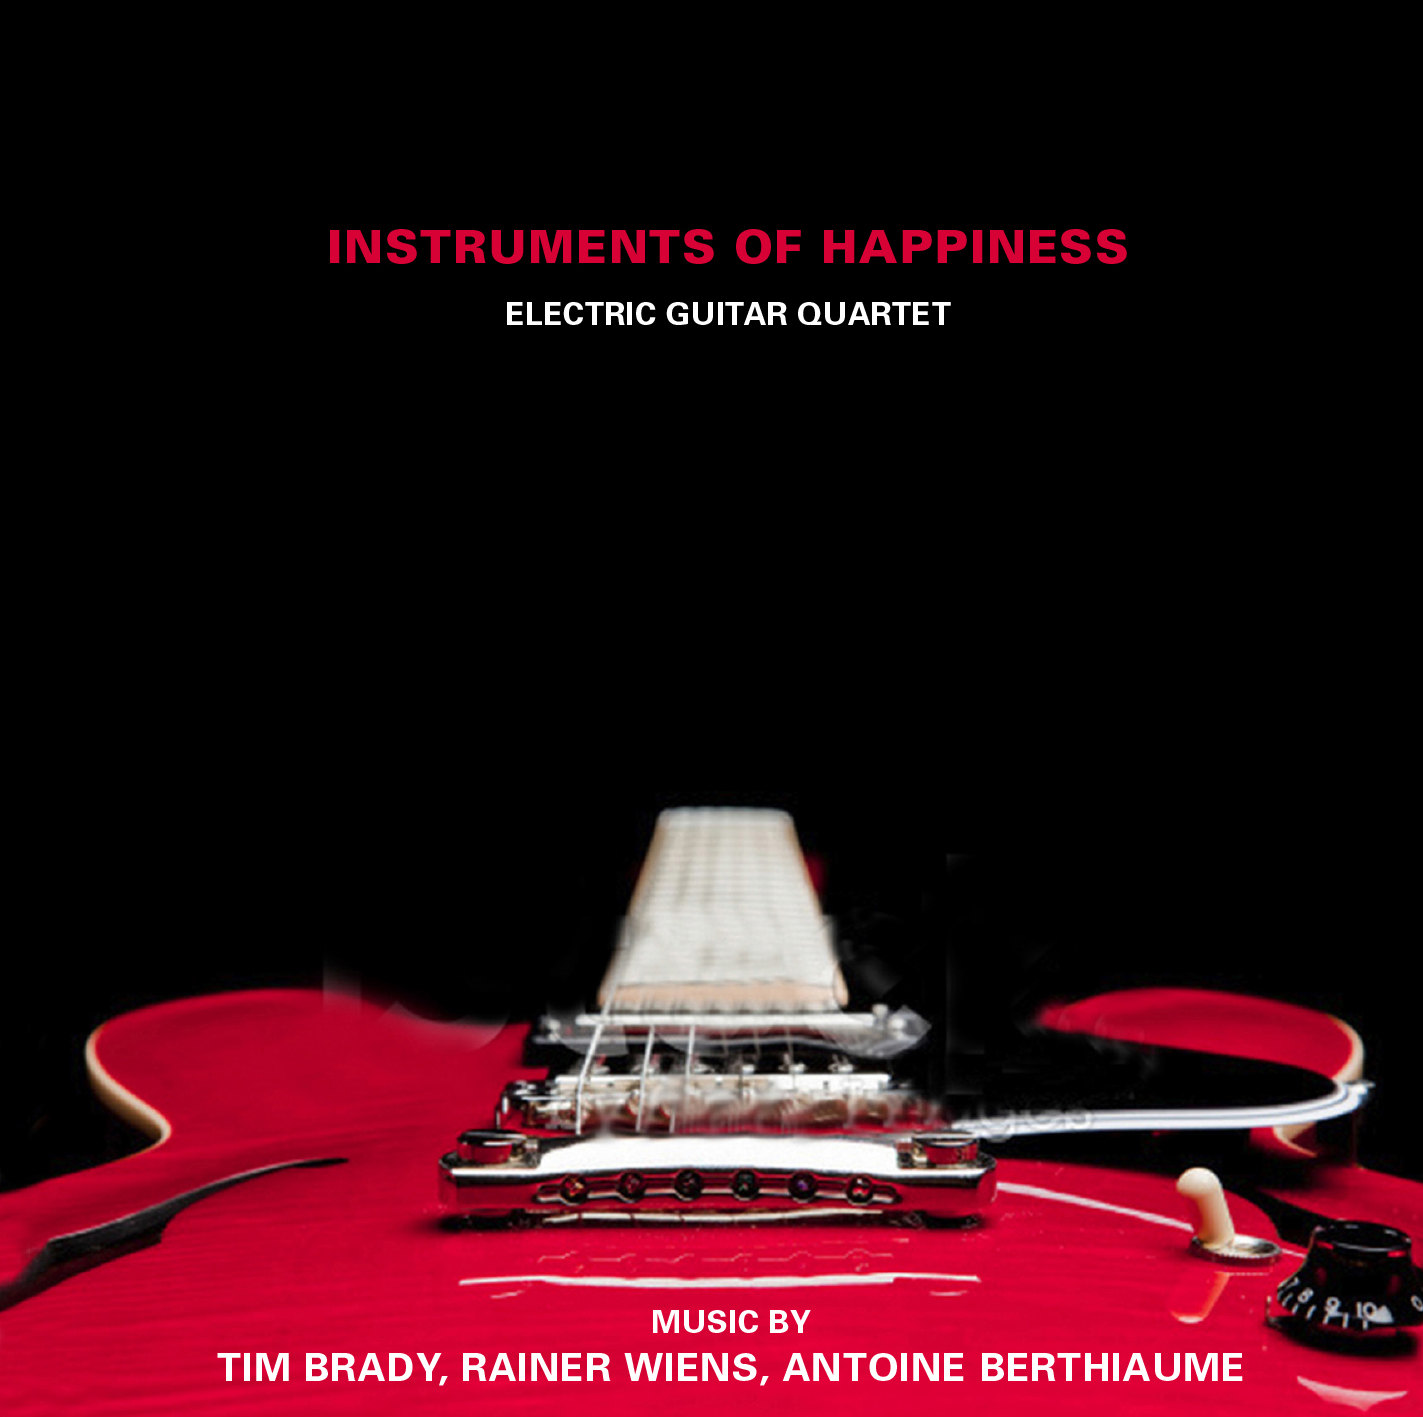 Instruments of Happiness: Instruments of Happiness